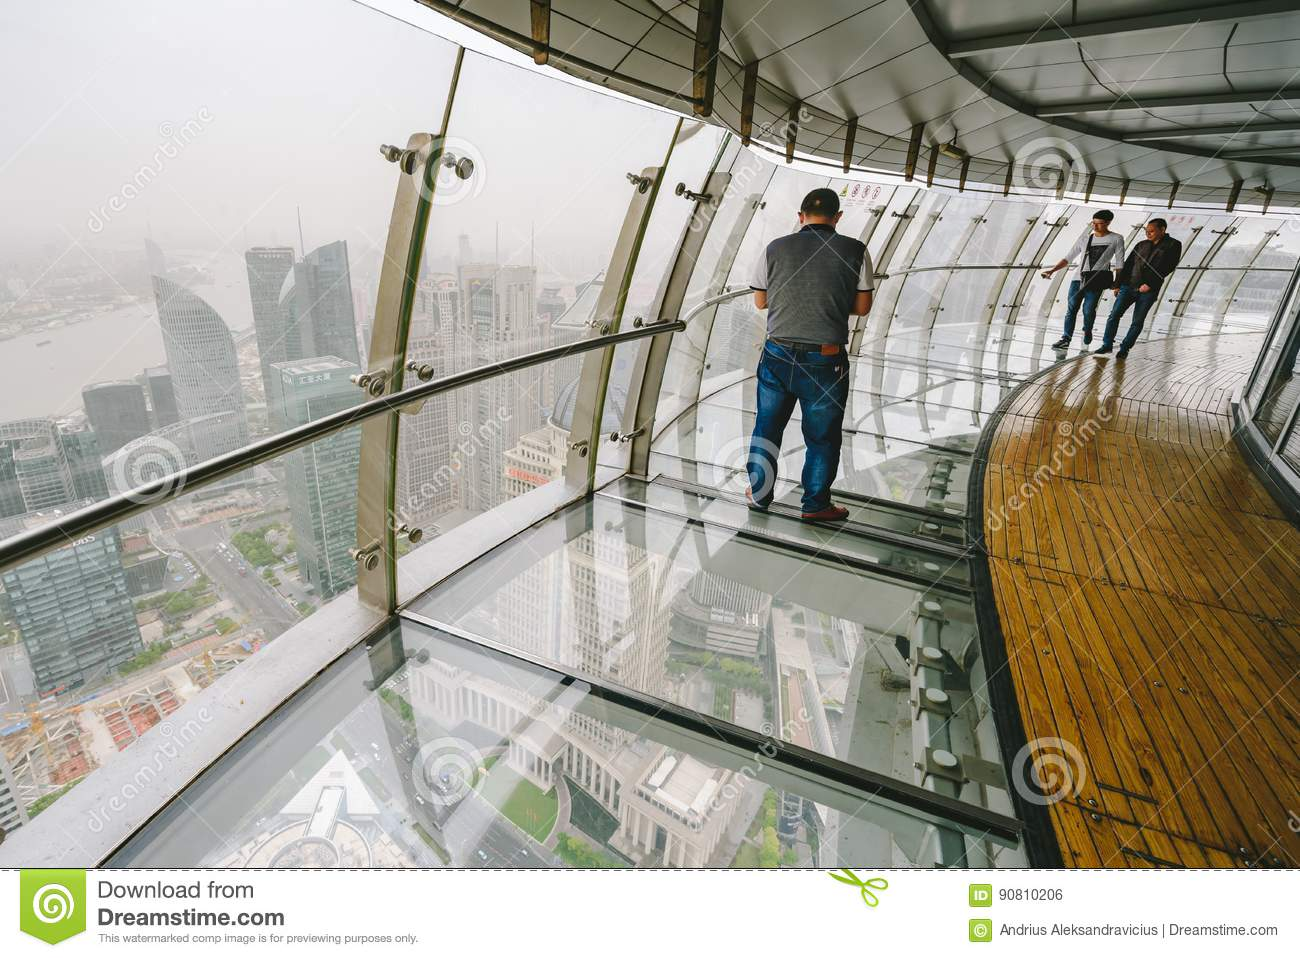 Tourists visiting Oriental Pearl Tower in Shanghai, China